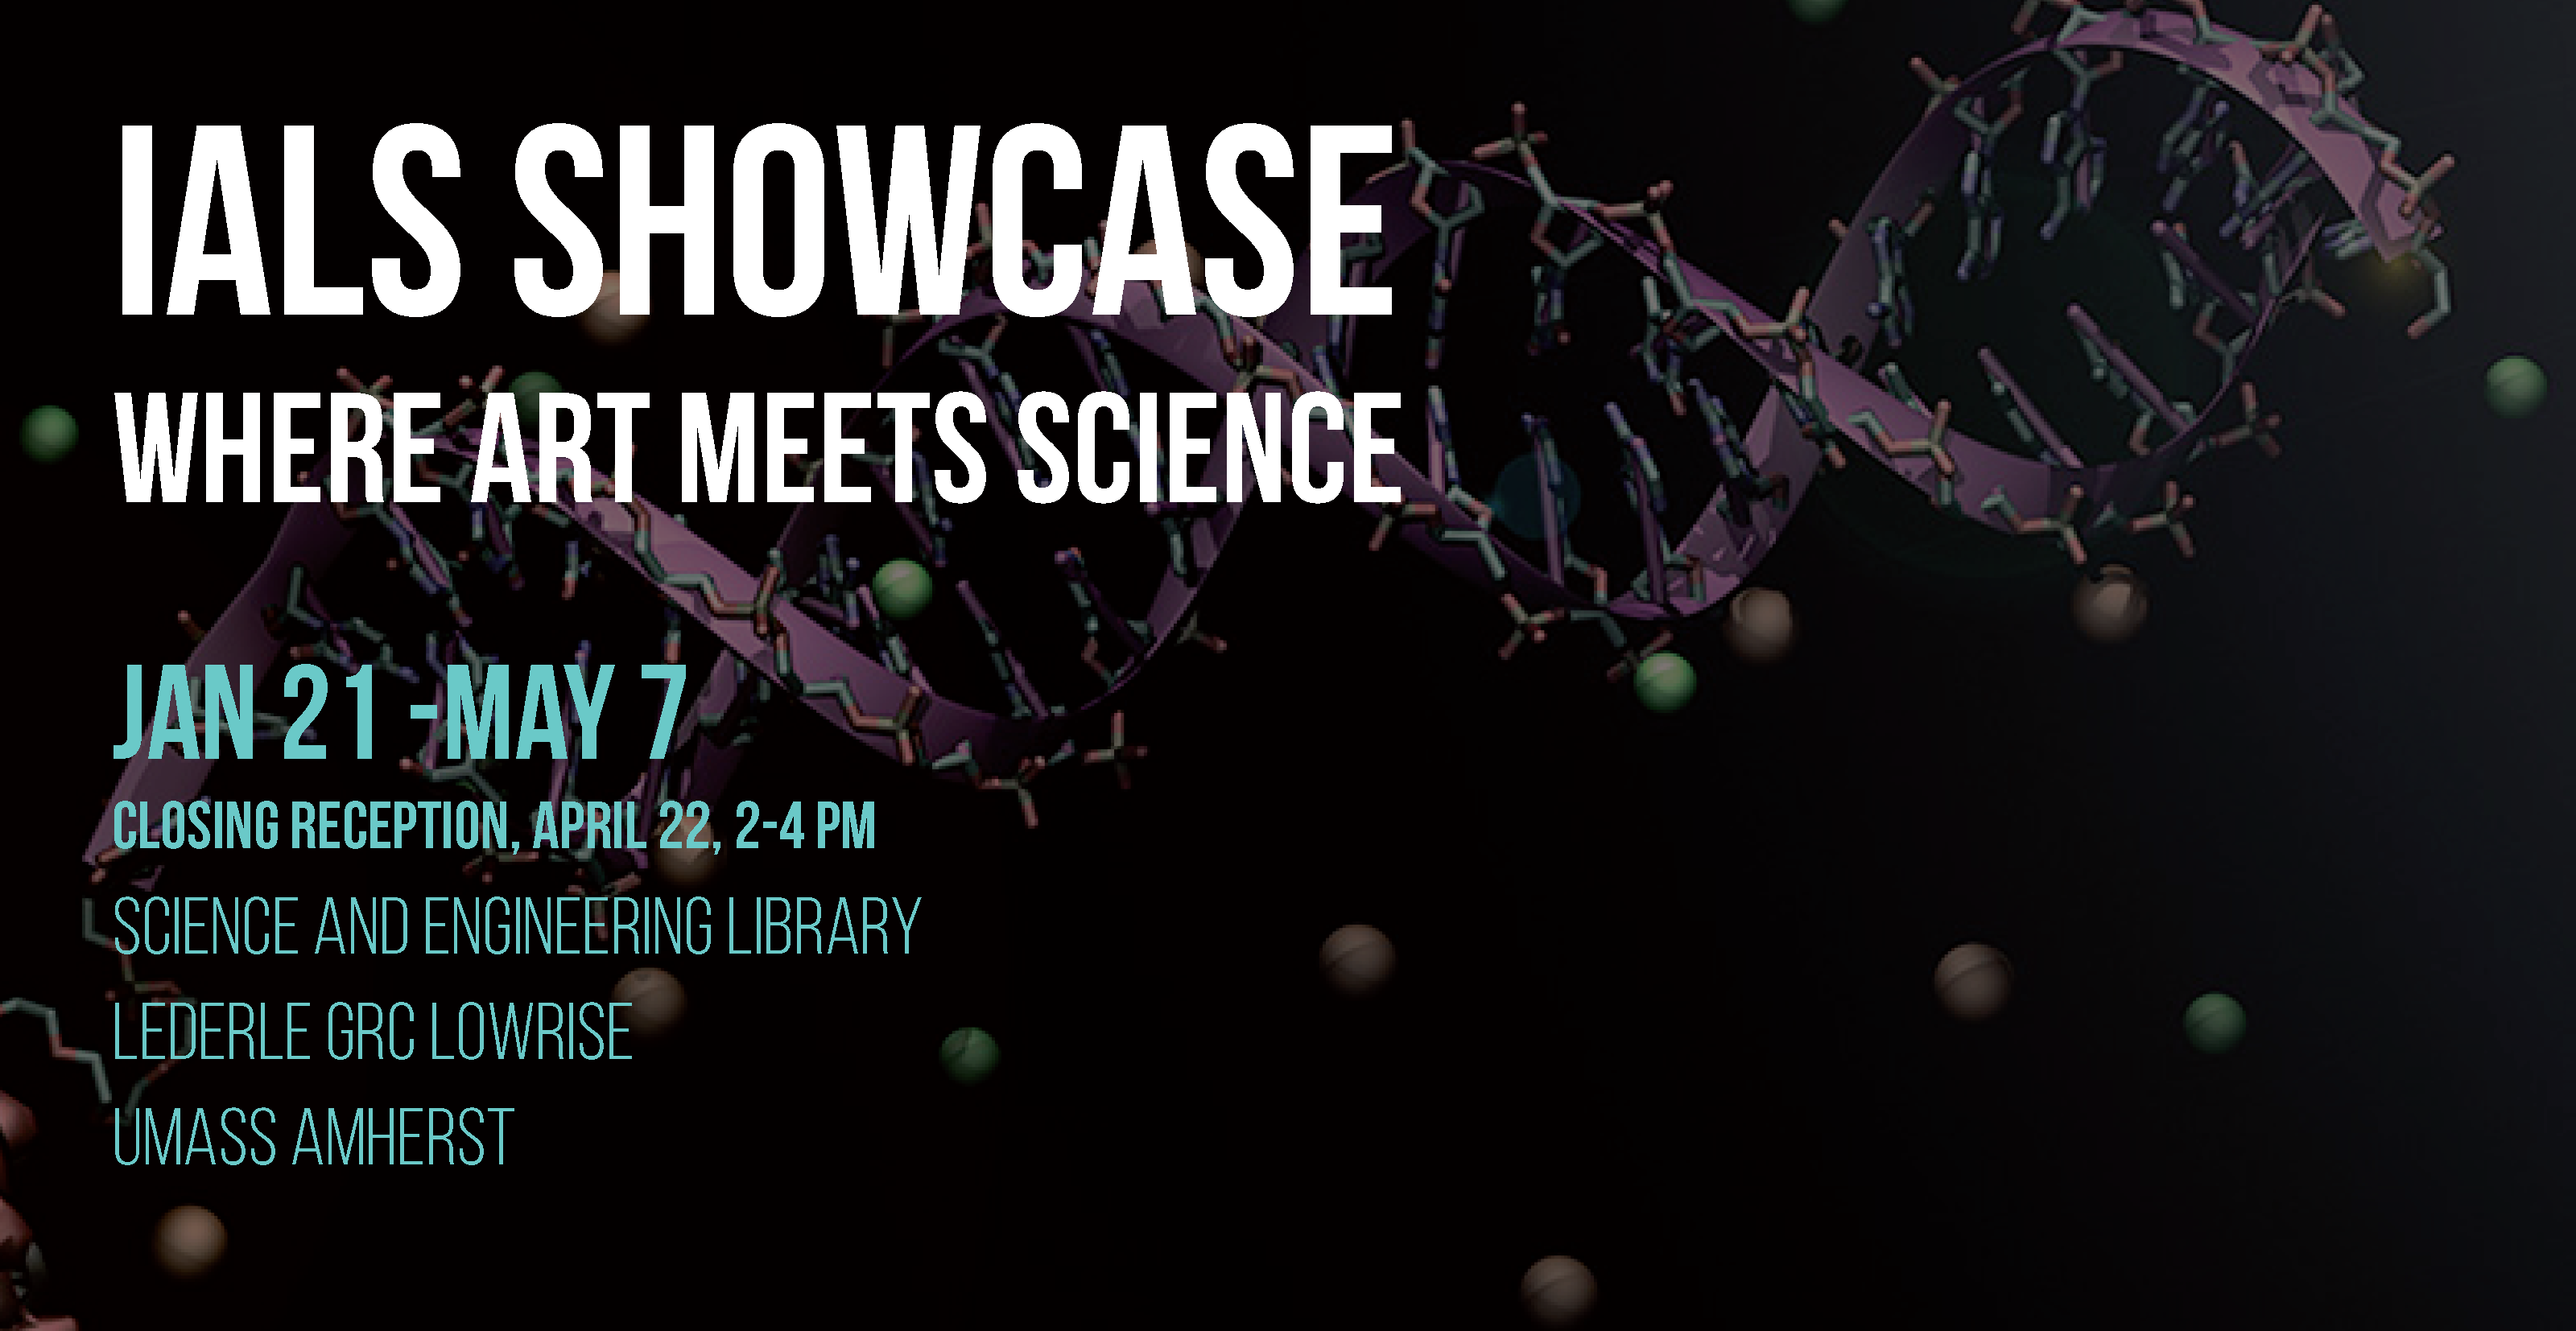 IALS Showcase-Where Art Meets Science